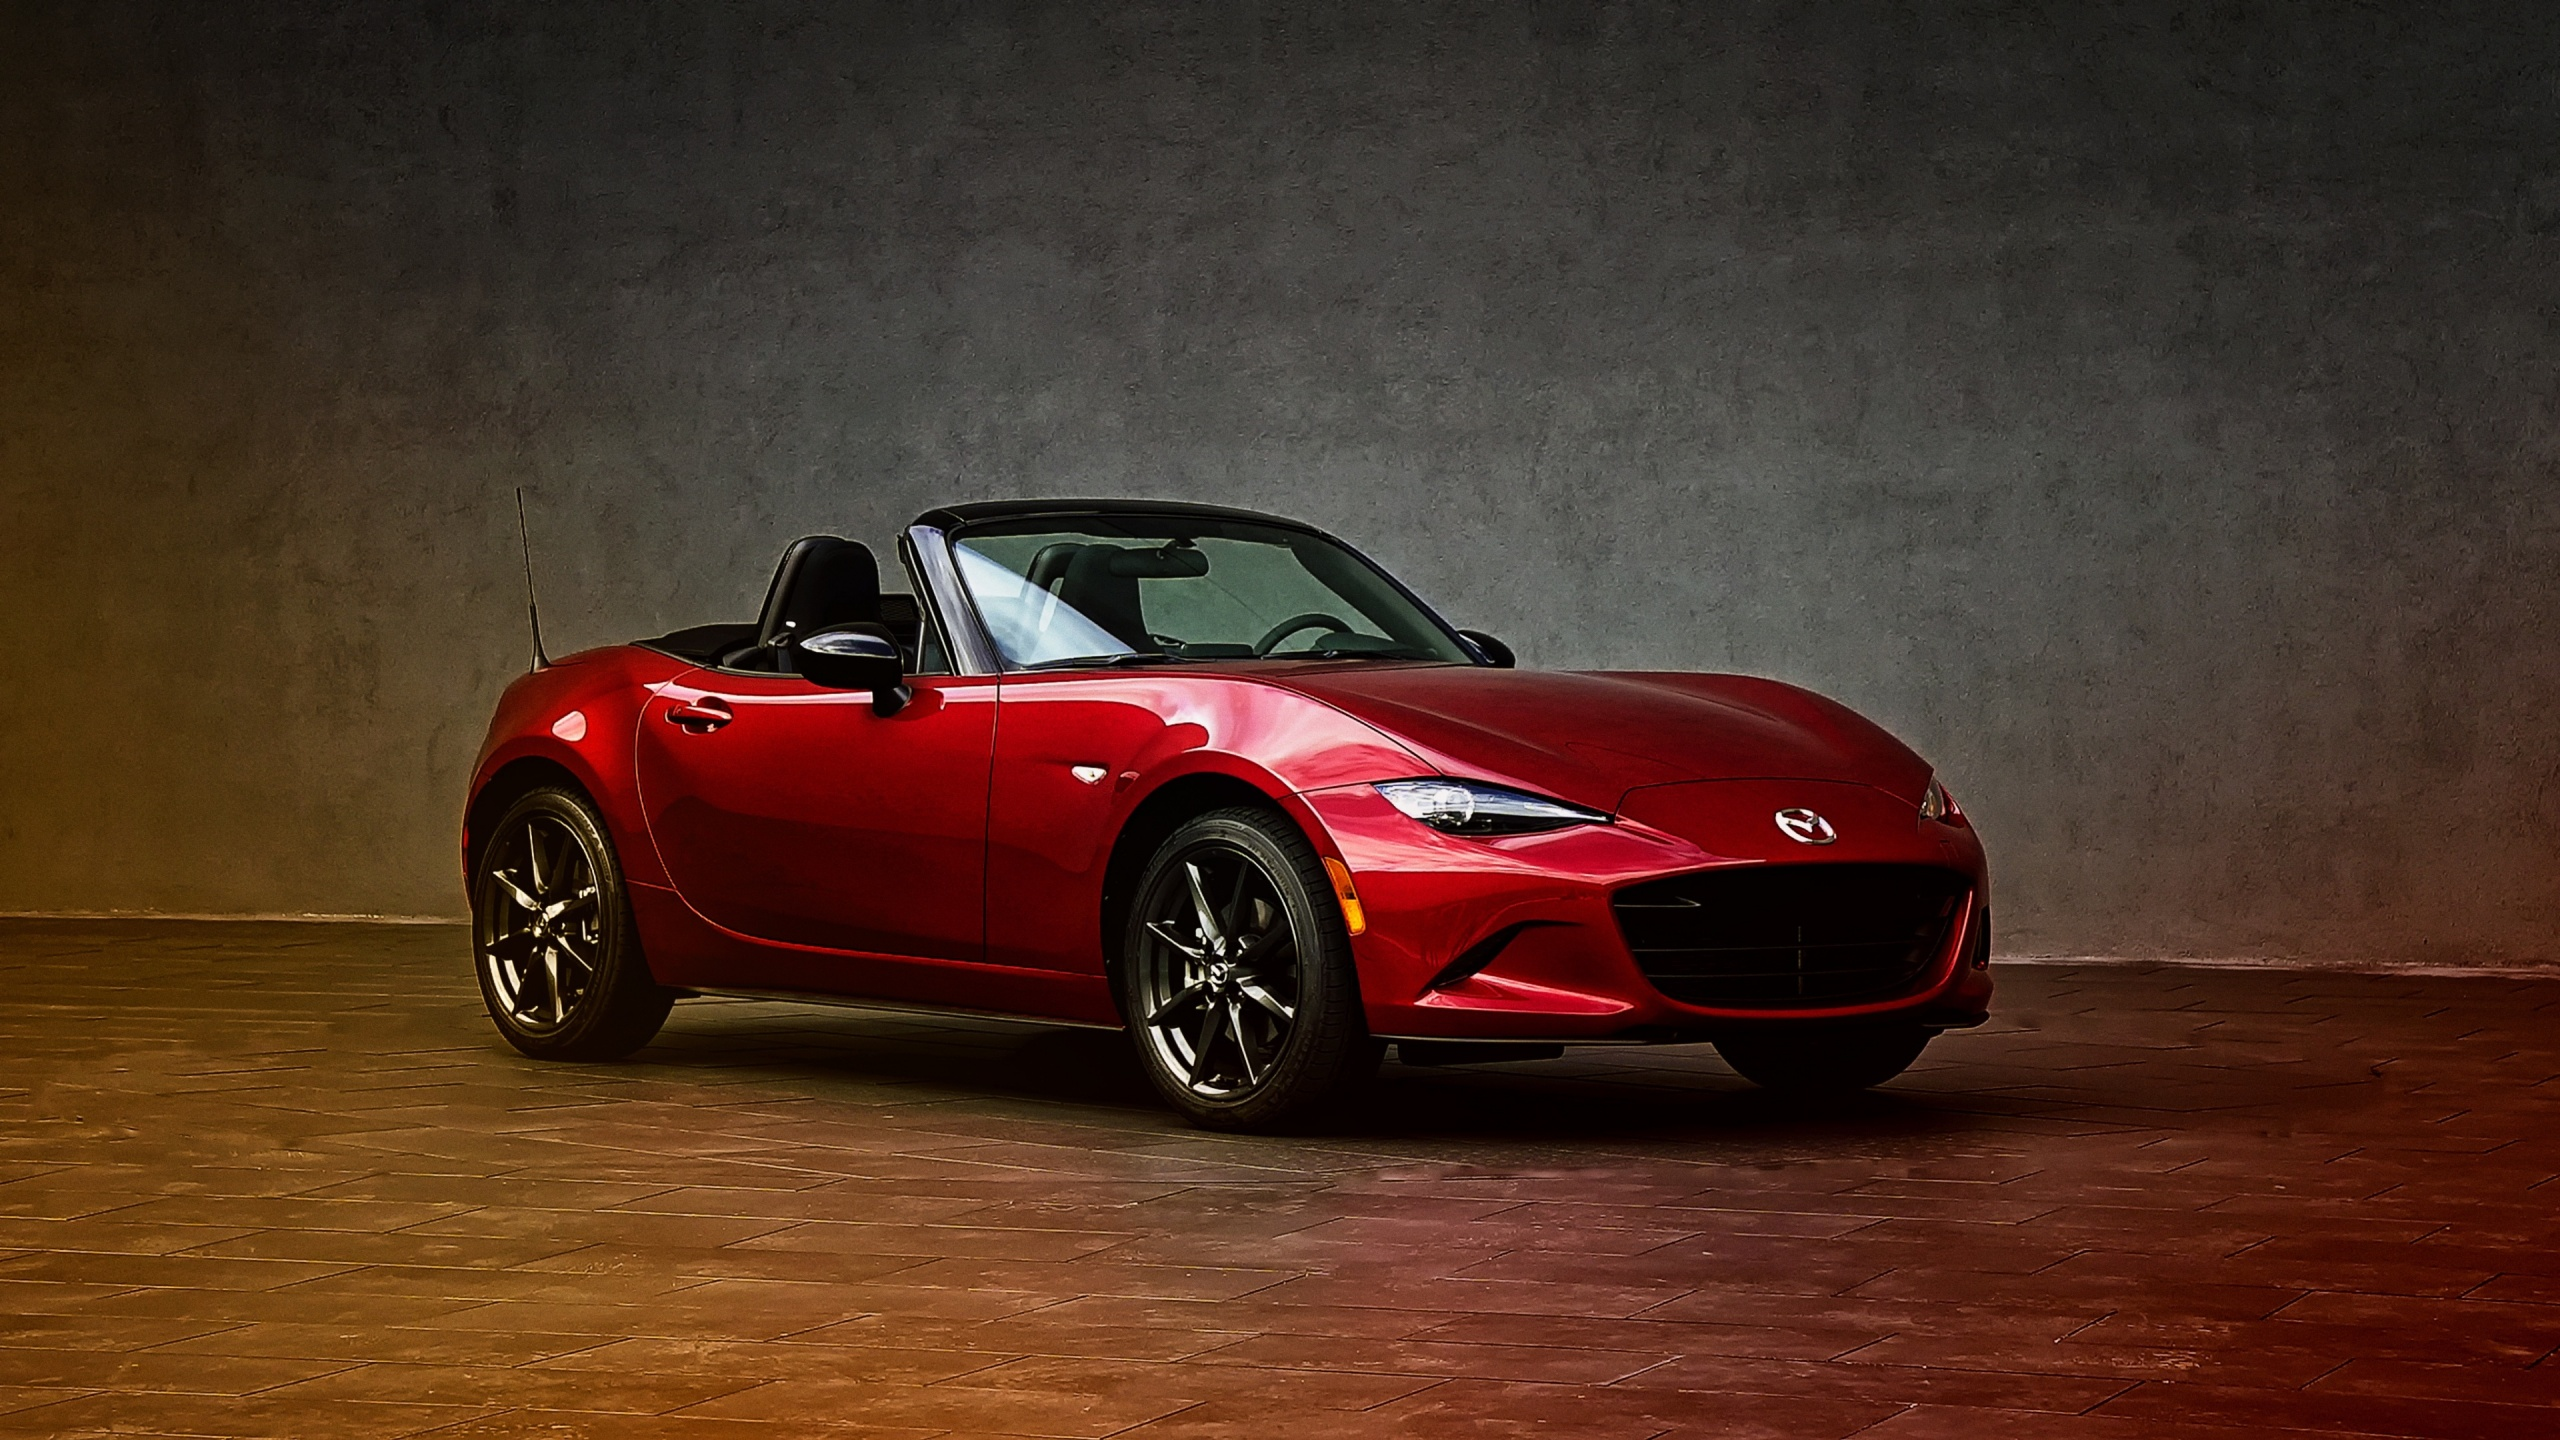 mazda mx 5 miata 2015 wallpapers 2560x1440 1124082. Black Bedroom Furniture Sets. Home Design Ideas